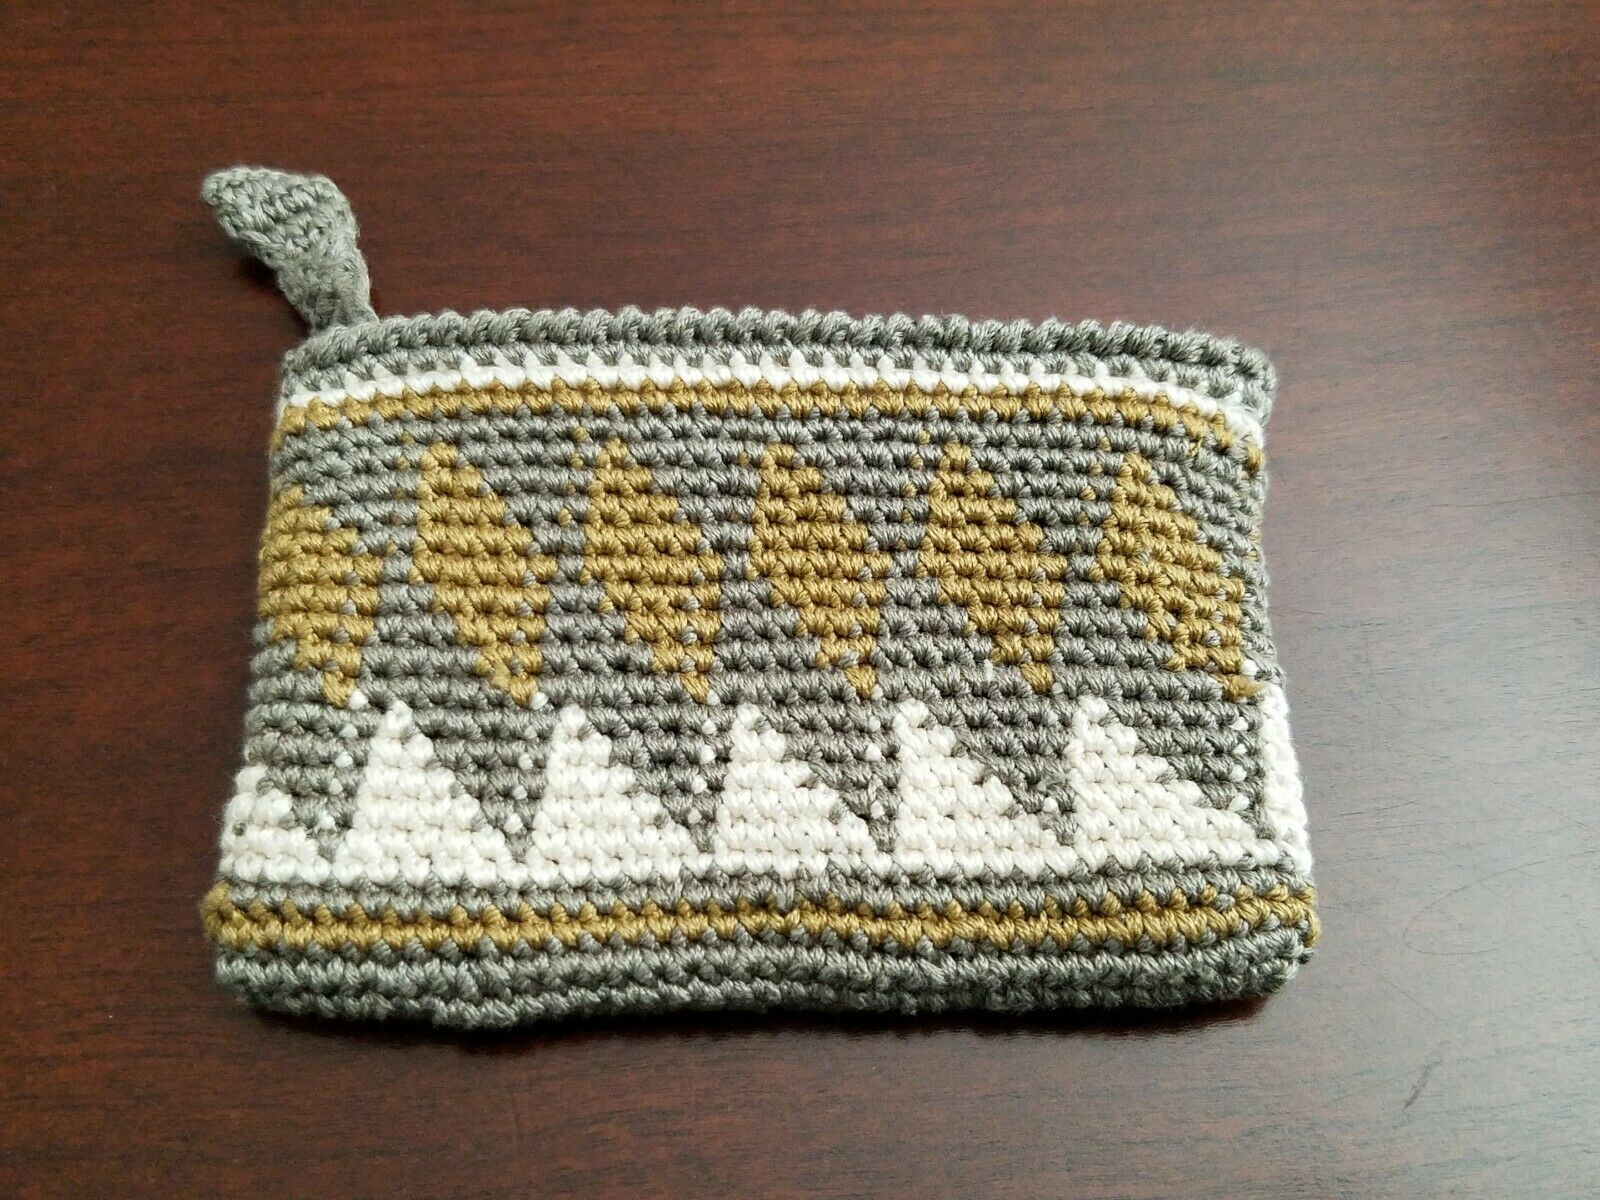 New Men In Cities Handmade Knit Peruvian Olive Wallet coin pouch